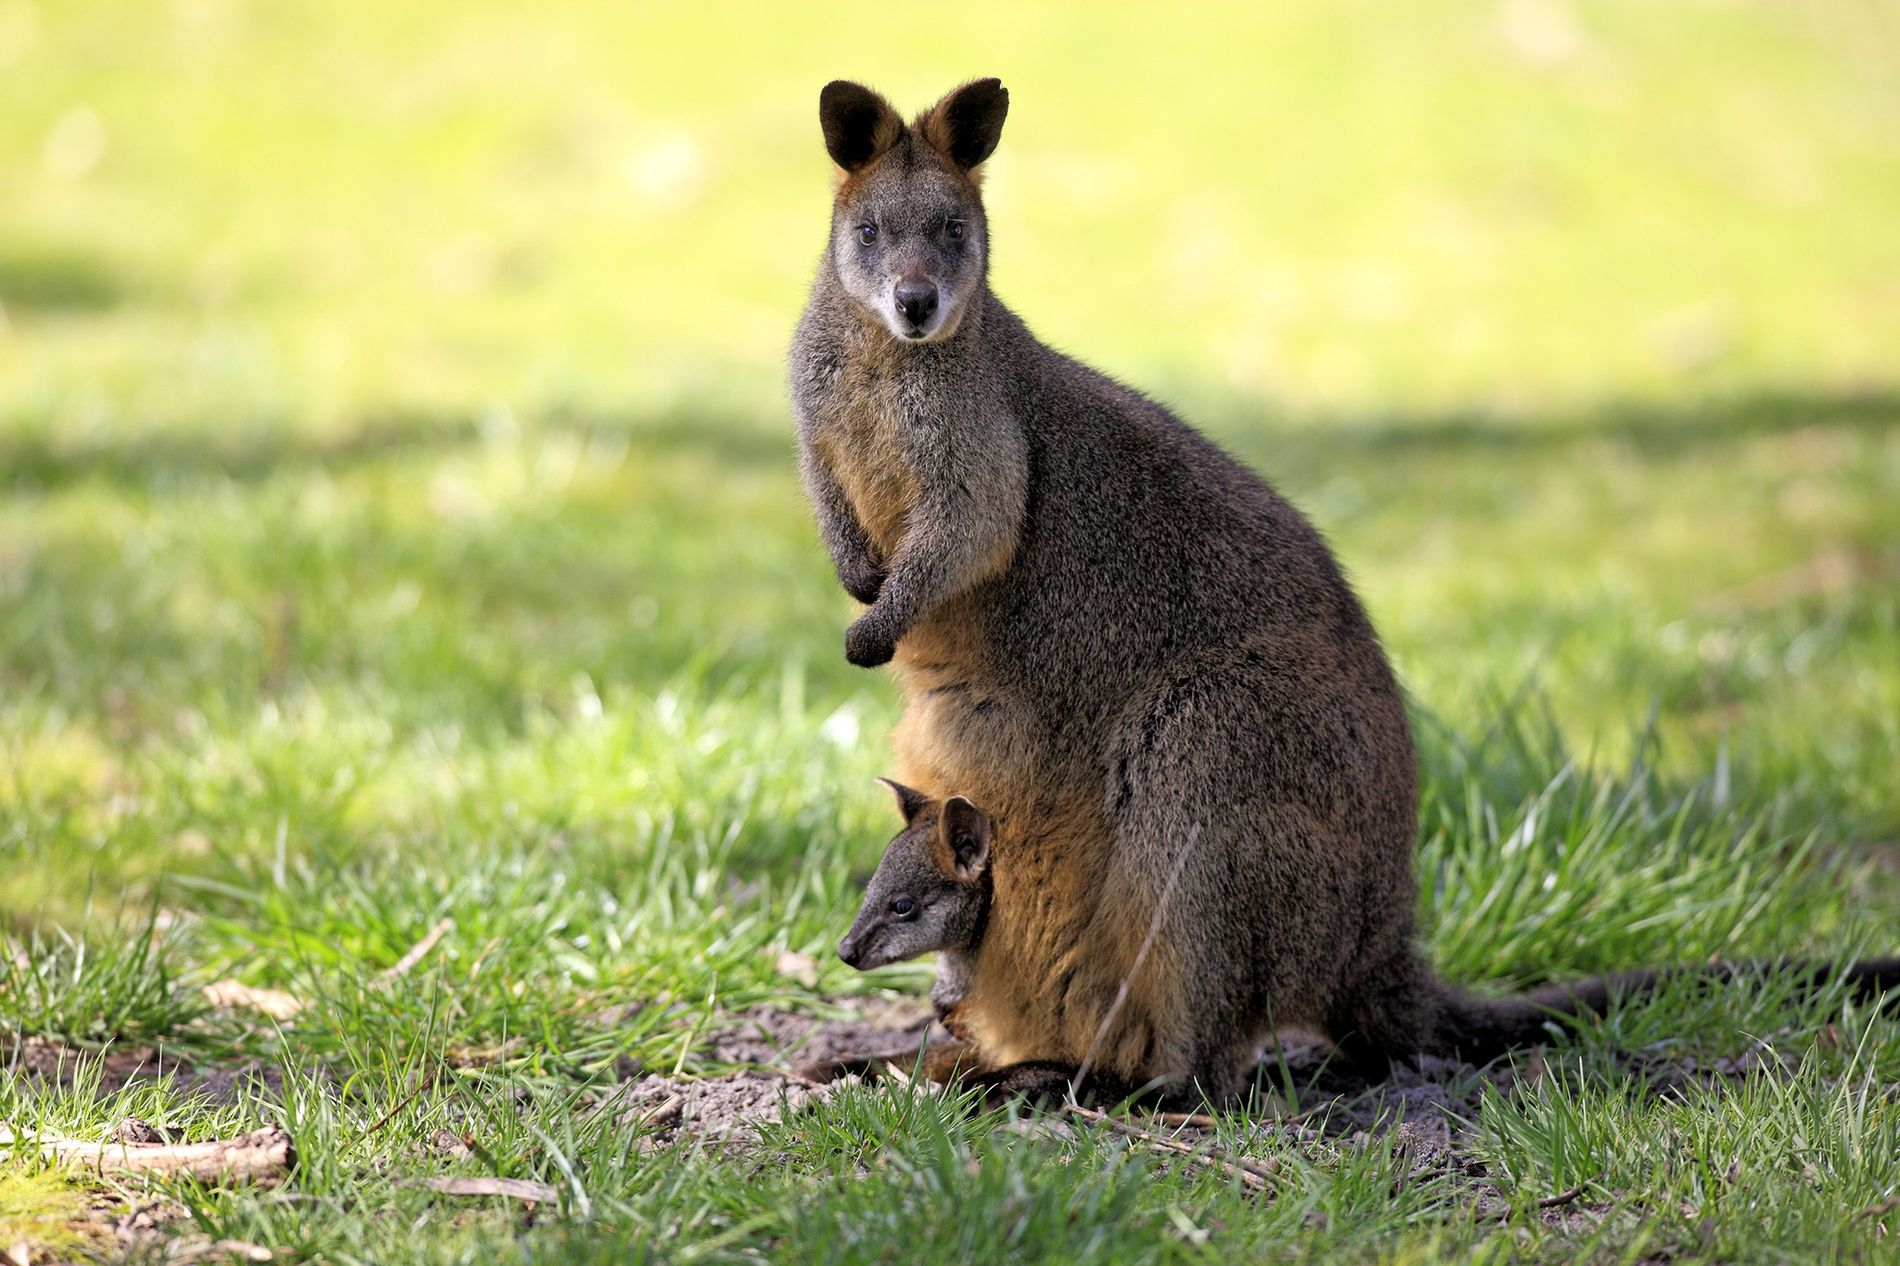 Female swamp wallabies able to get pregnant again two days before giving birth.